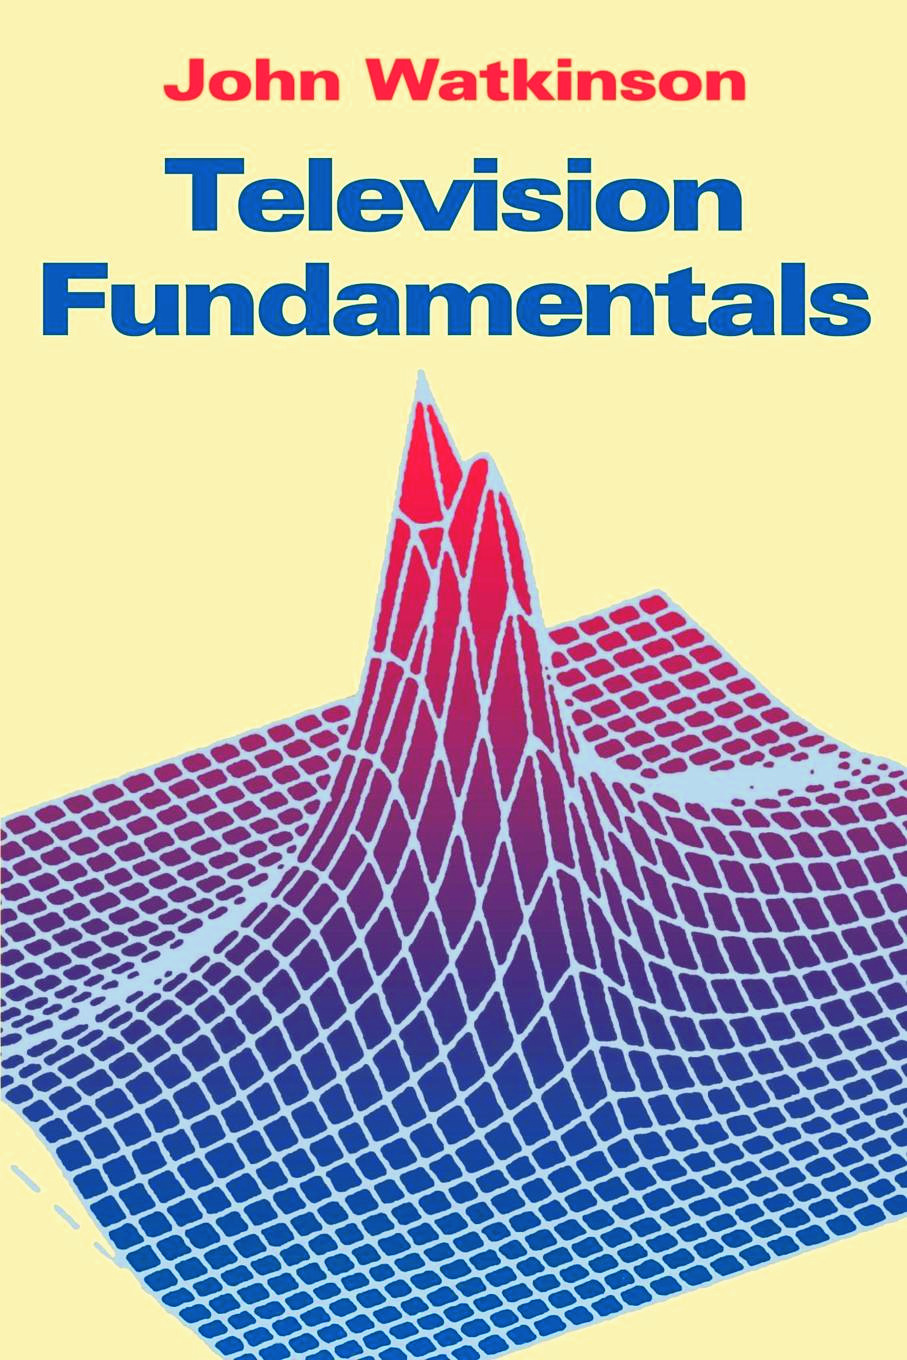 Television Fundamentals book cover